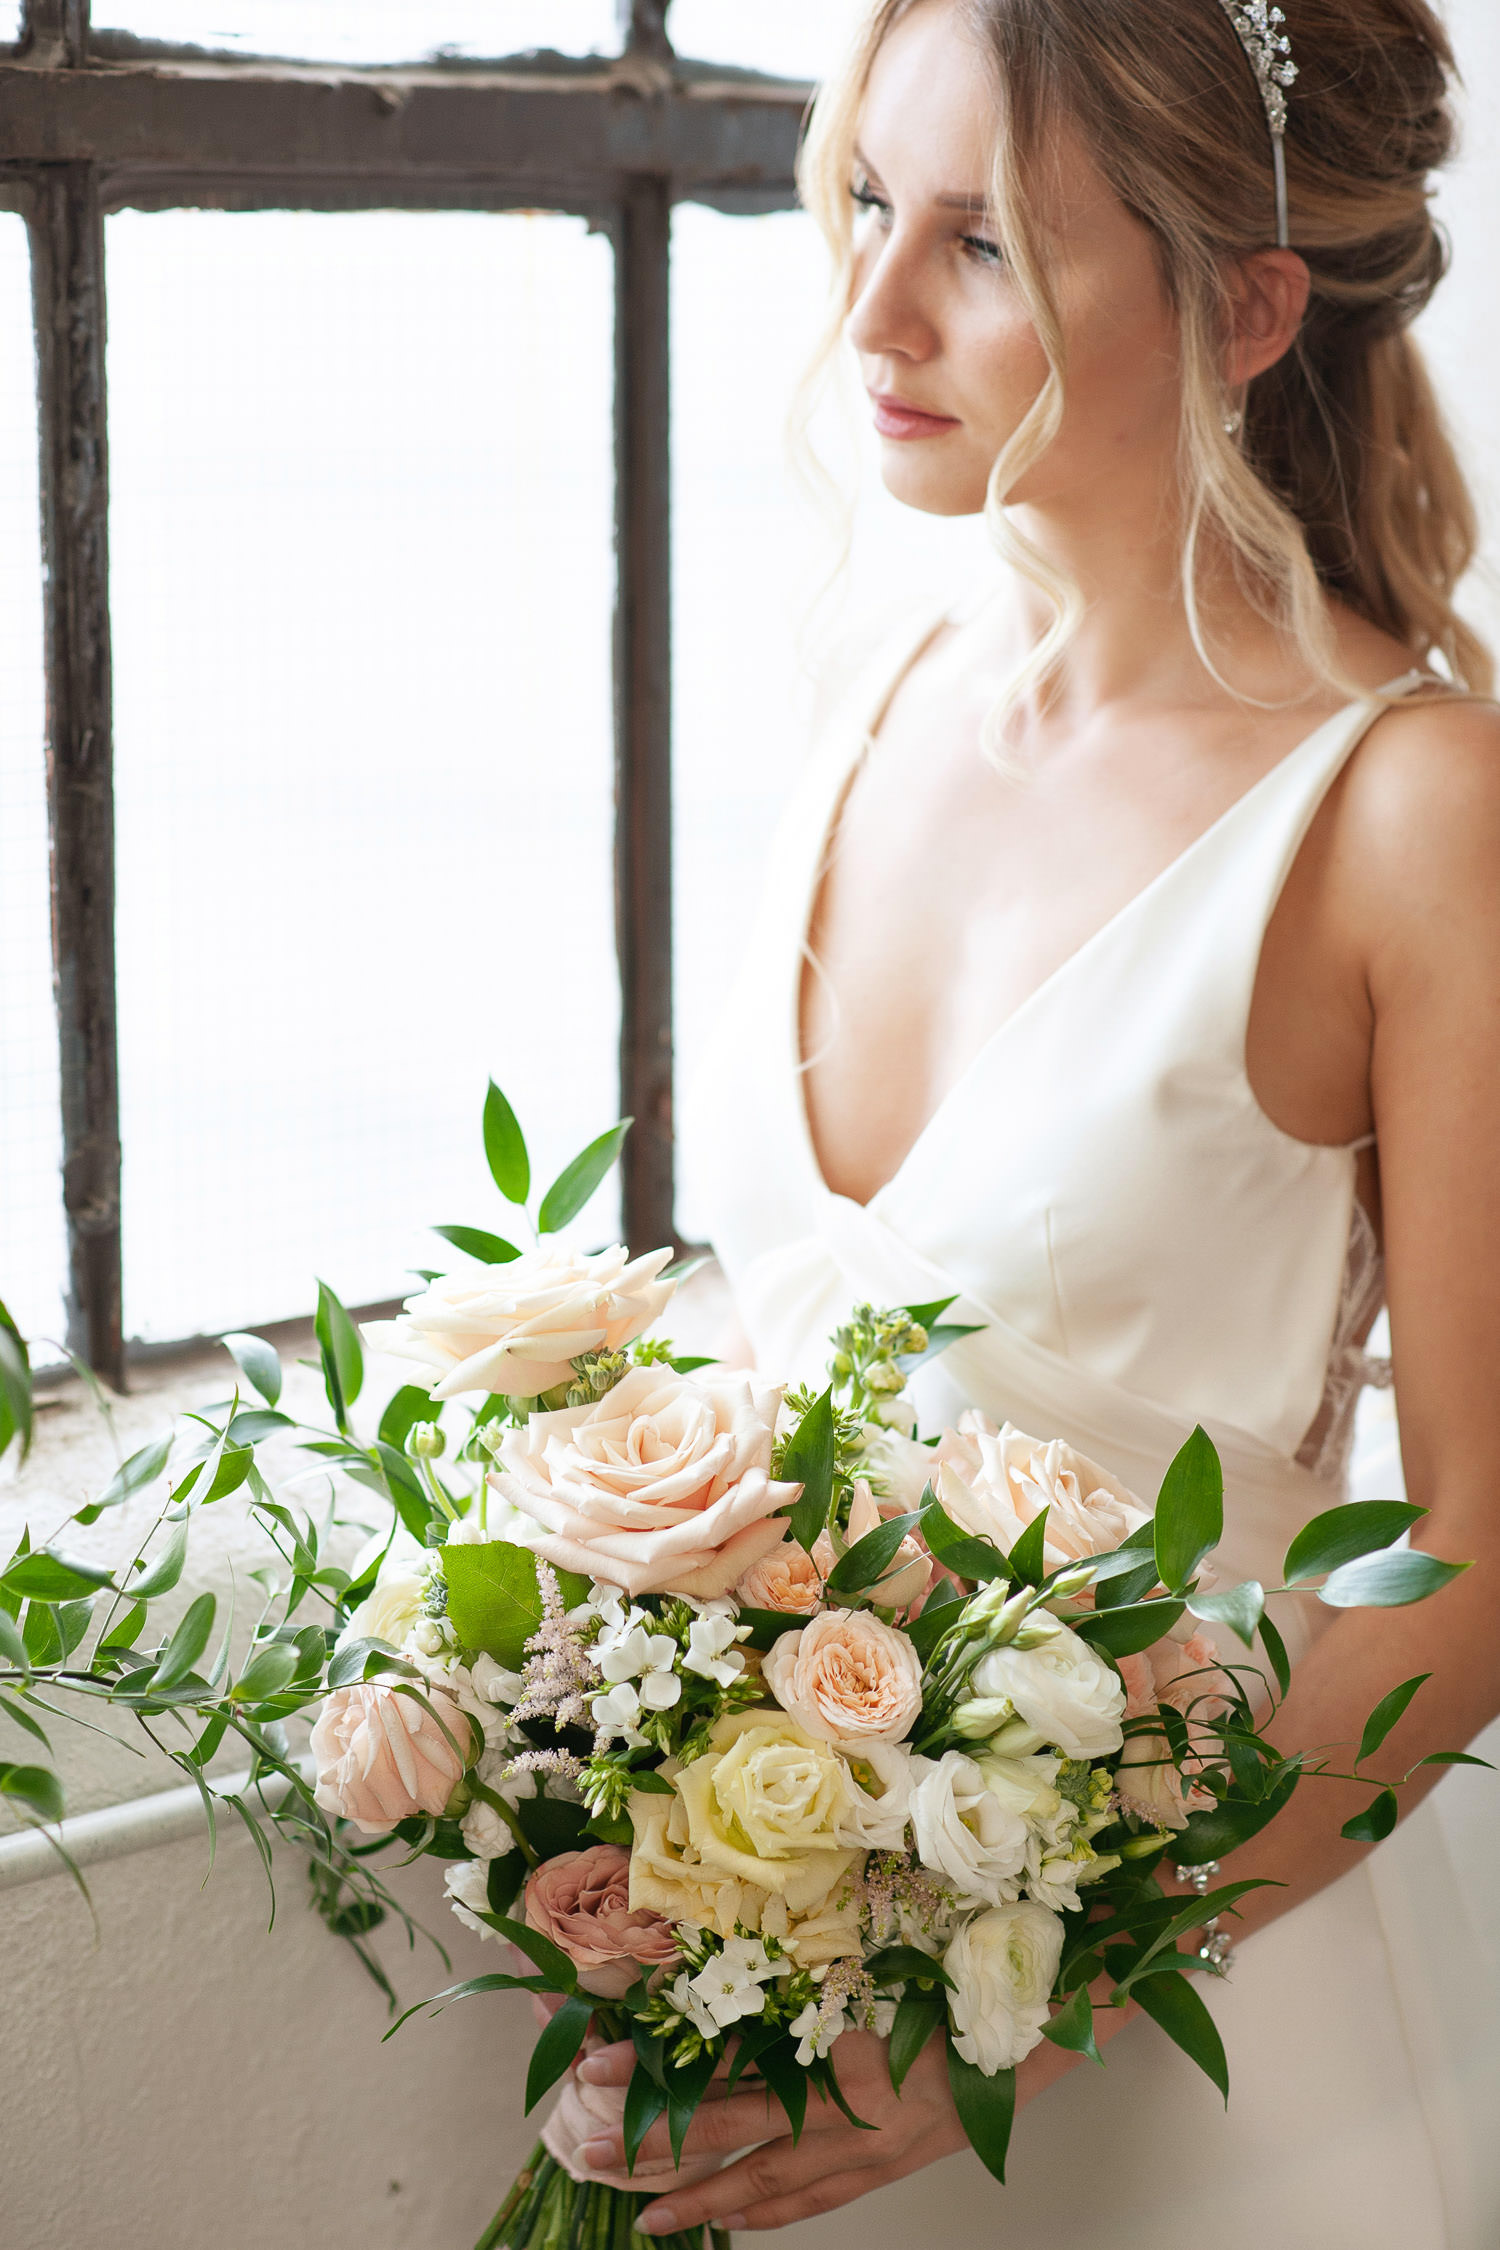 bridal bouquet in peach and white captured by Tara Whittaker Photography